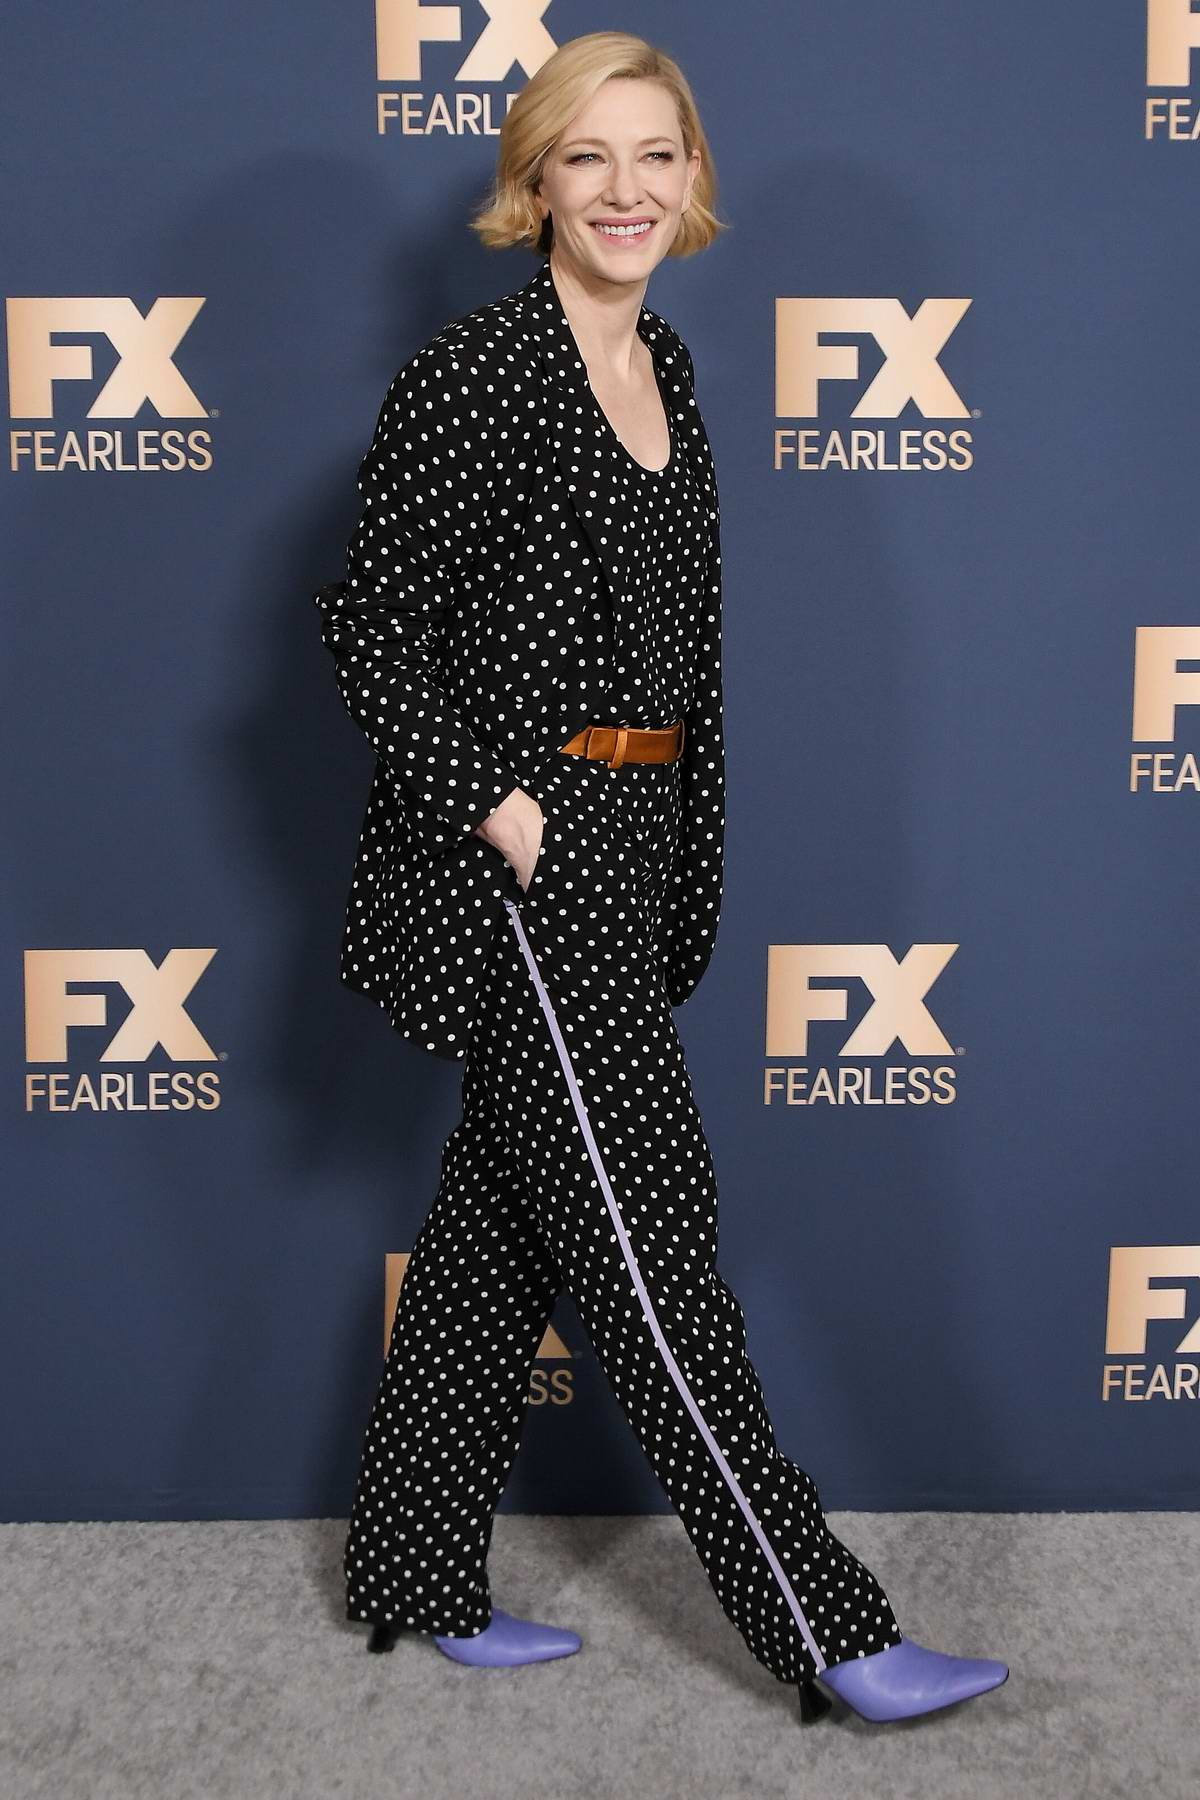 Cate Blanchett attends the FX Networks Winter TCA Starwalk in Pasadena, California